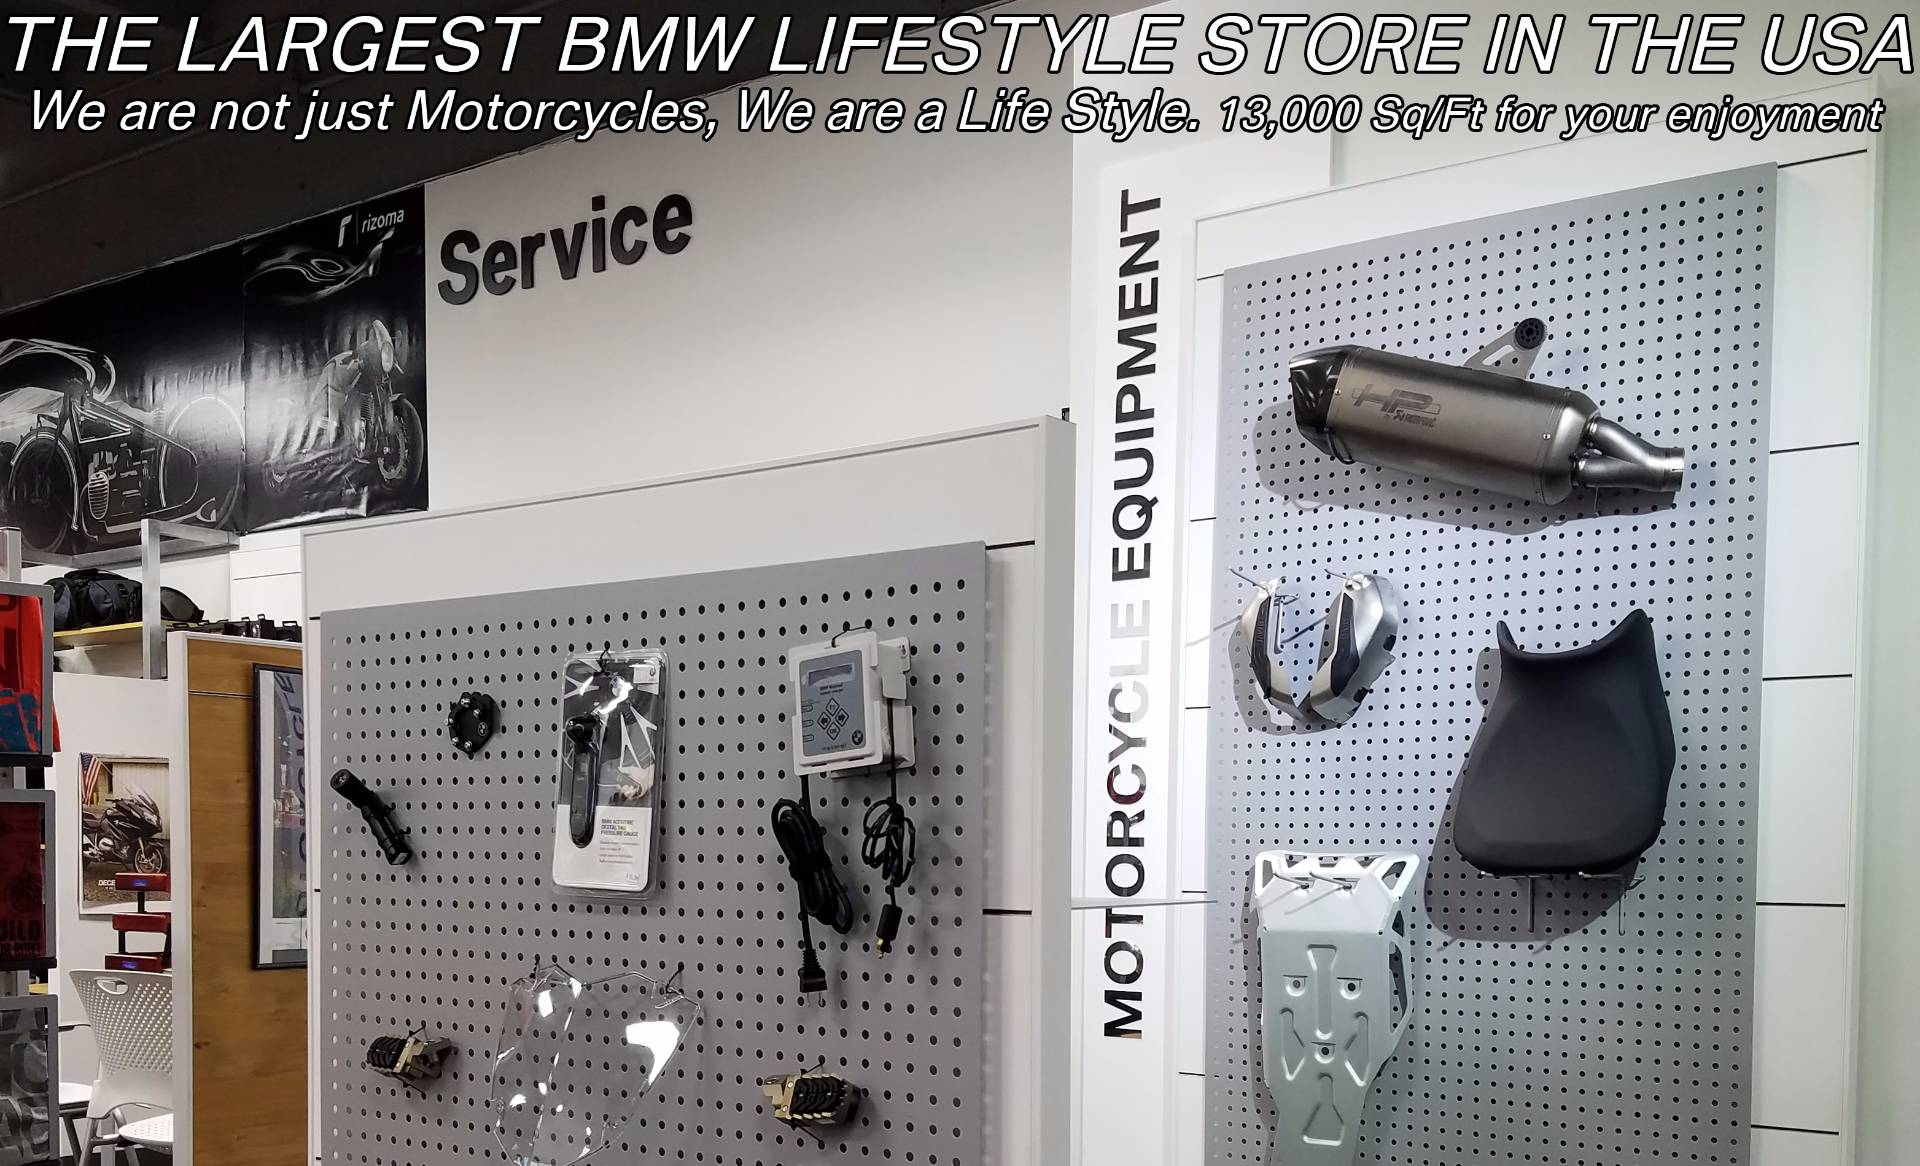 New 2018 Connectivity BMW R 1200 GS For Sale, BMW R 1200 GS TFT Screen For Sale, BMW Motorcycle R 1200GS, new BMW 1200GS, New BMW Motorcycle